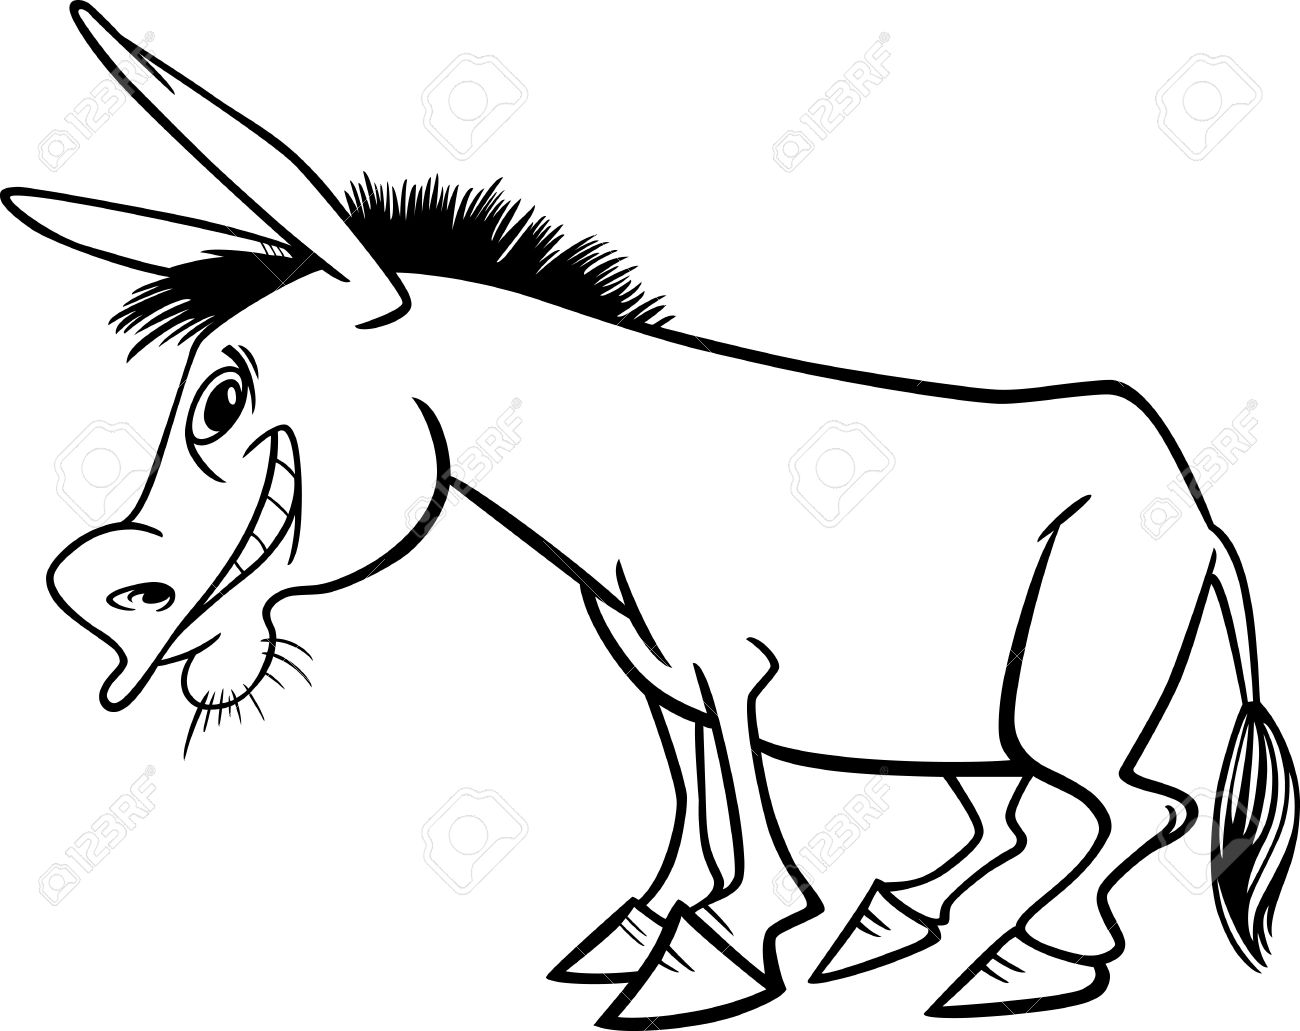 Cartoon Illustration of Funny Donkey Farm Animal for Coloring Book Stock Vector - 16213924